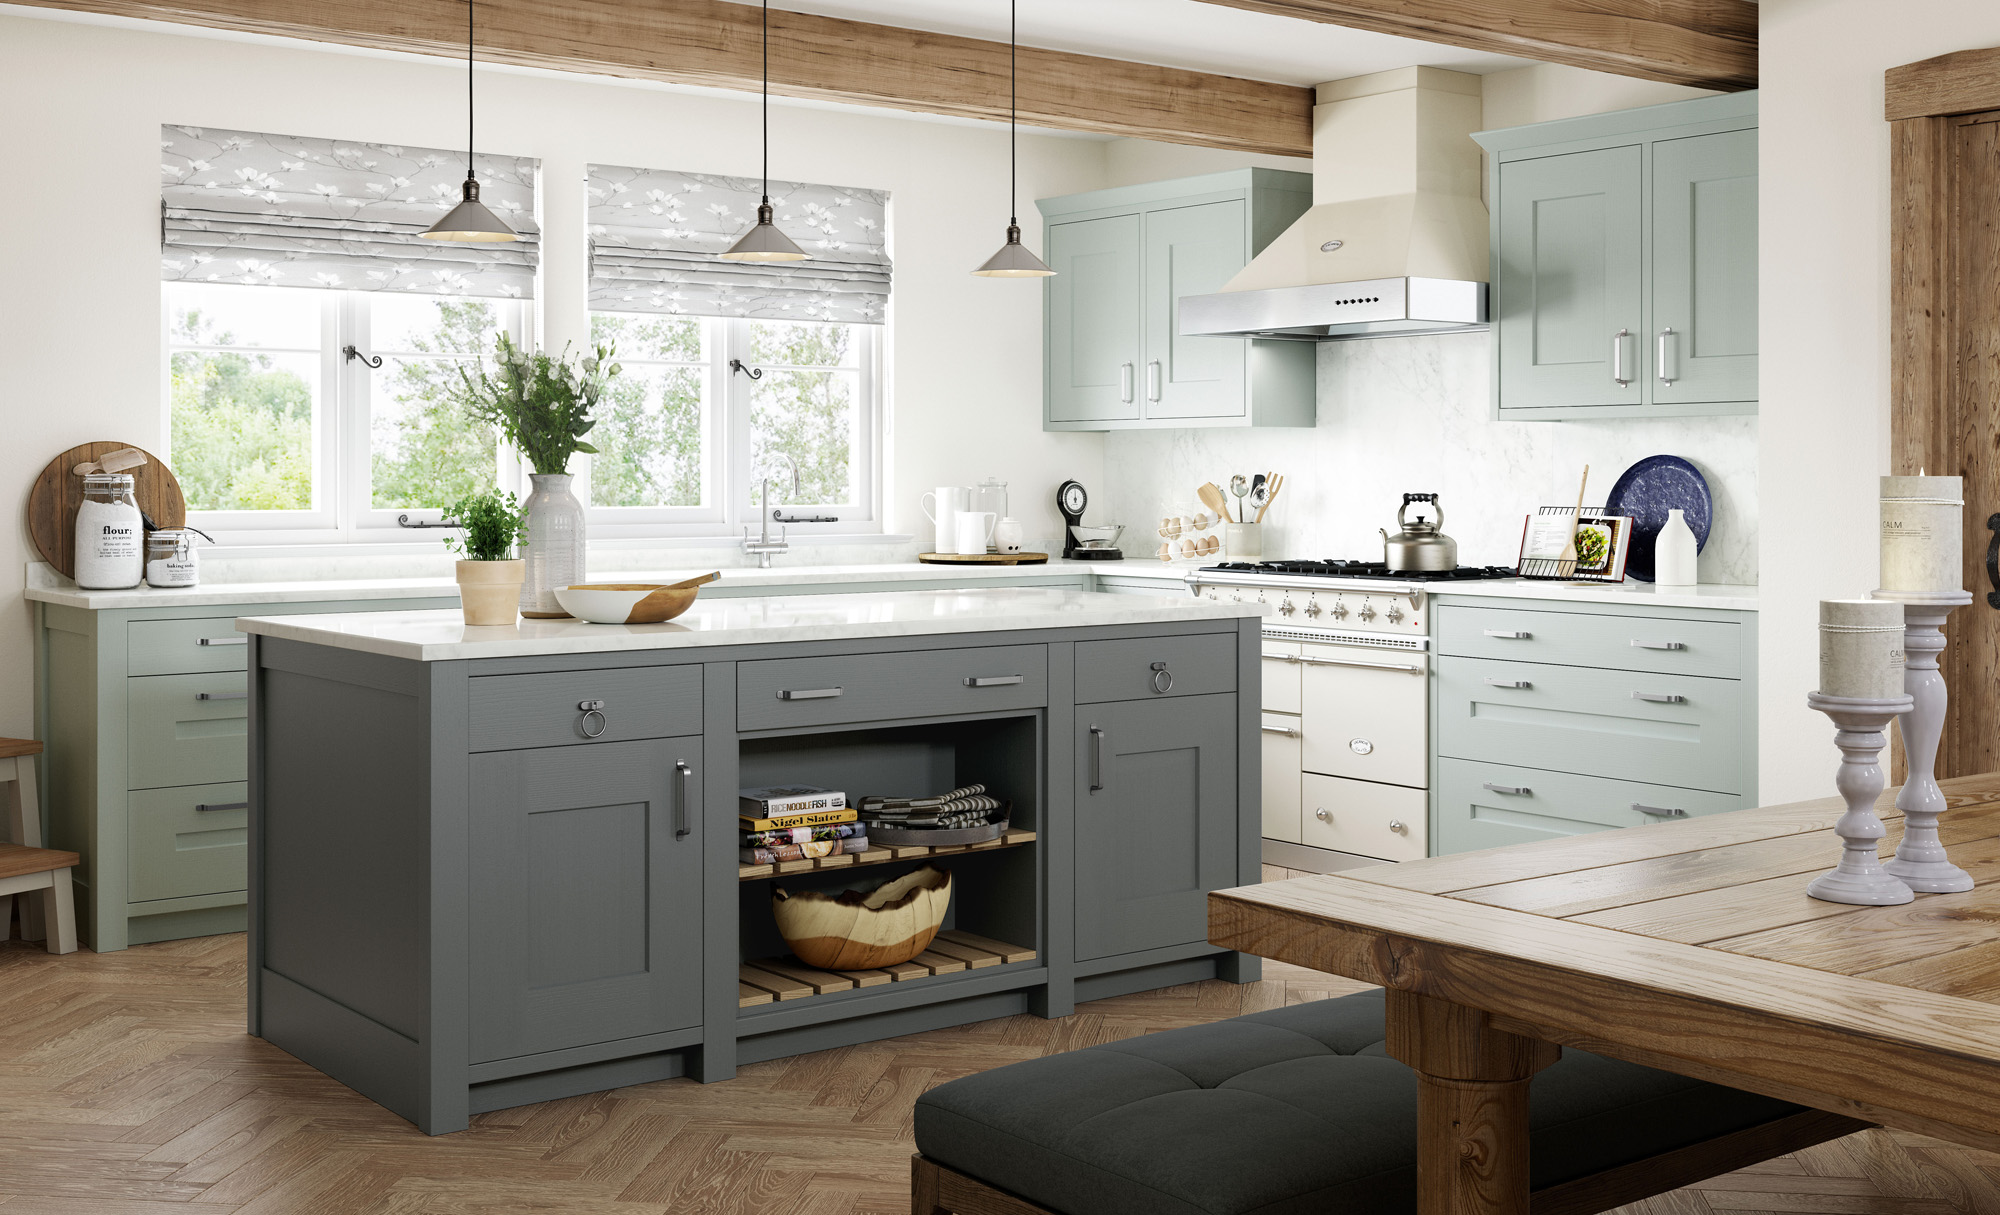 Country Classic Traditional Clonmel Light Blue and Gun-Metal Grey image